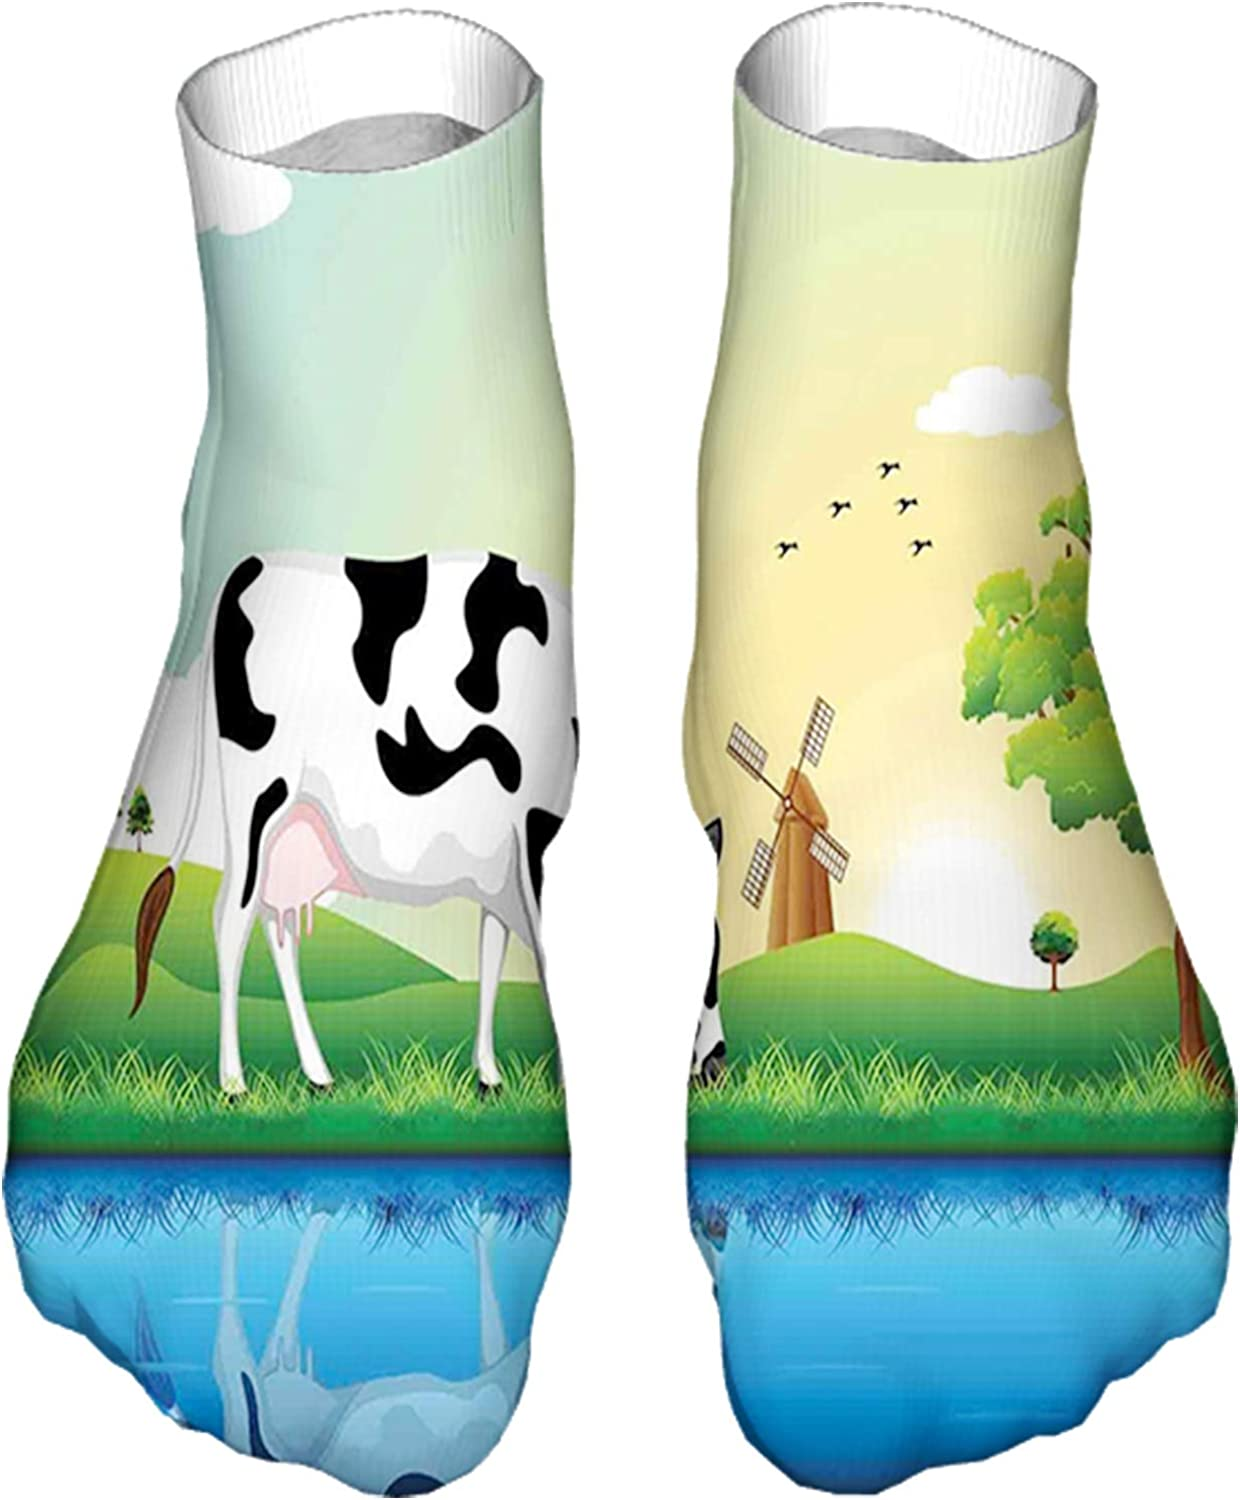 Men's and Women's Fun Socks Printed Cool Novelty Funny Socks,Graphic Design Grazing Cow in The Field with Trees Near